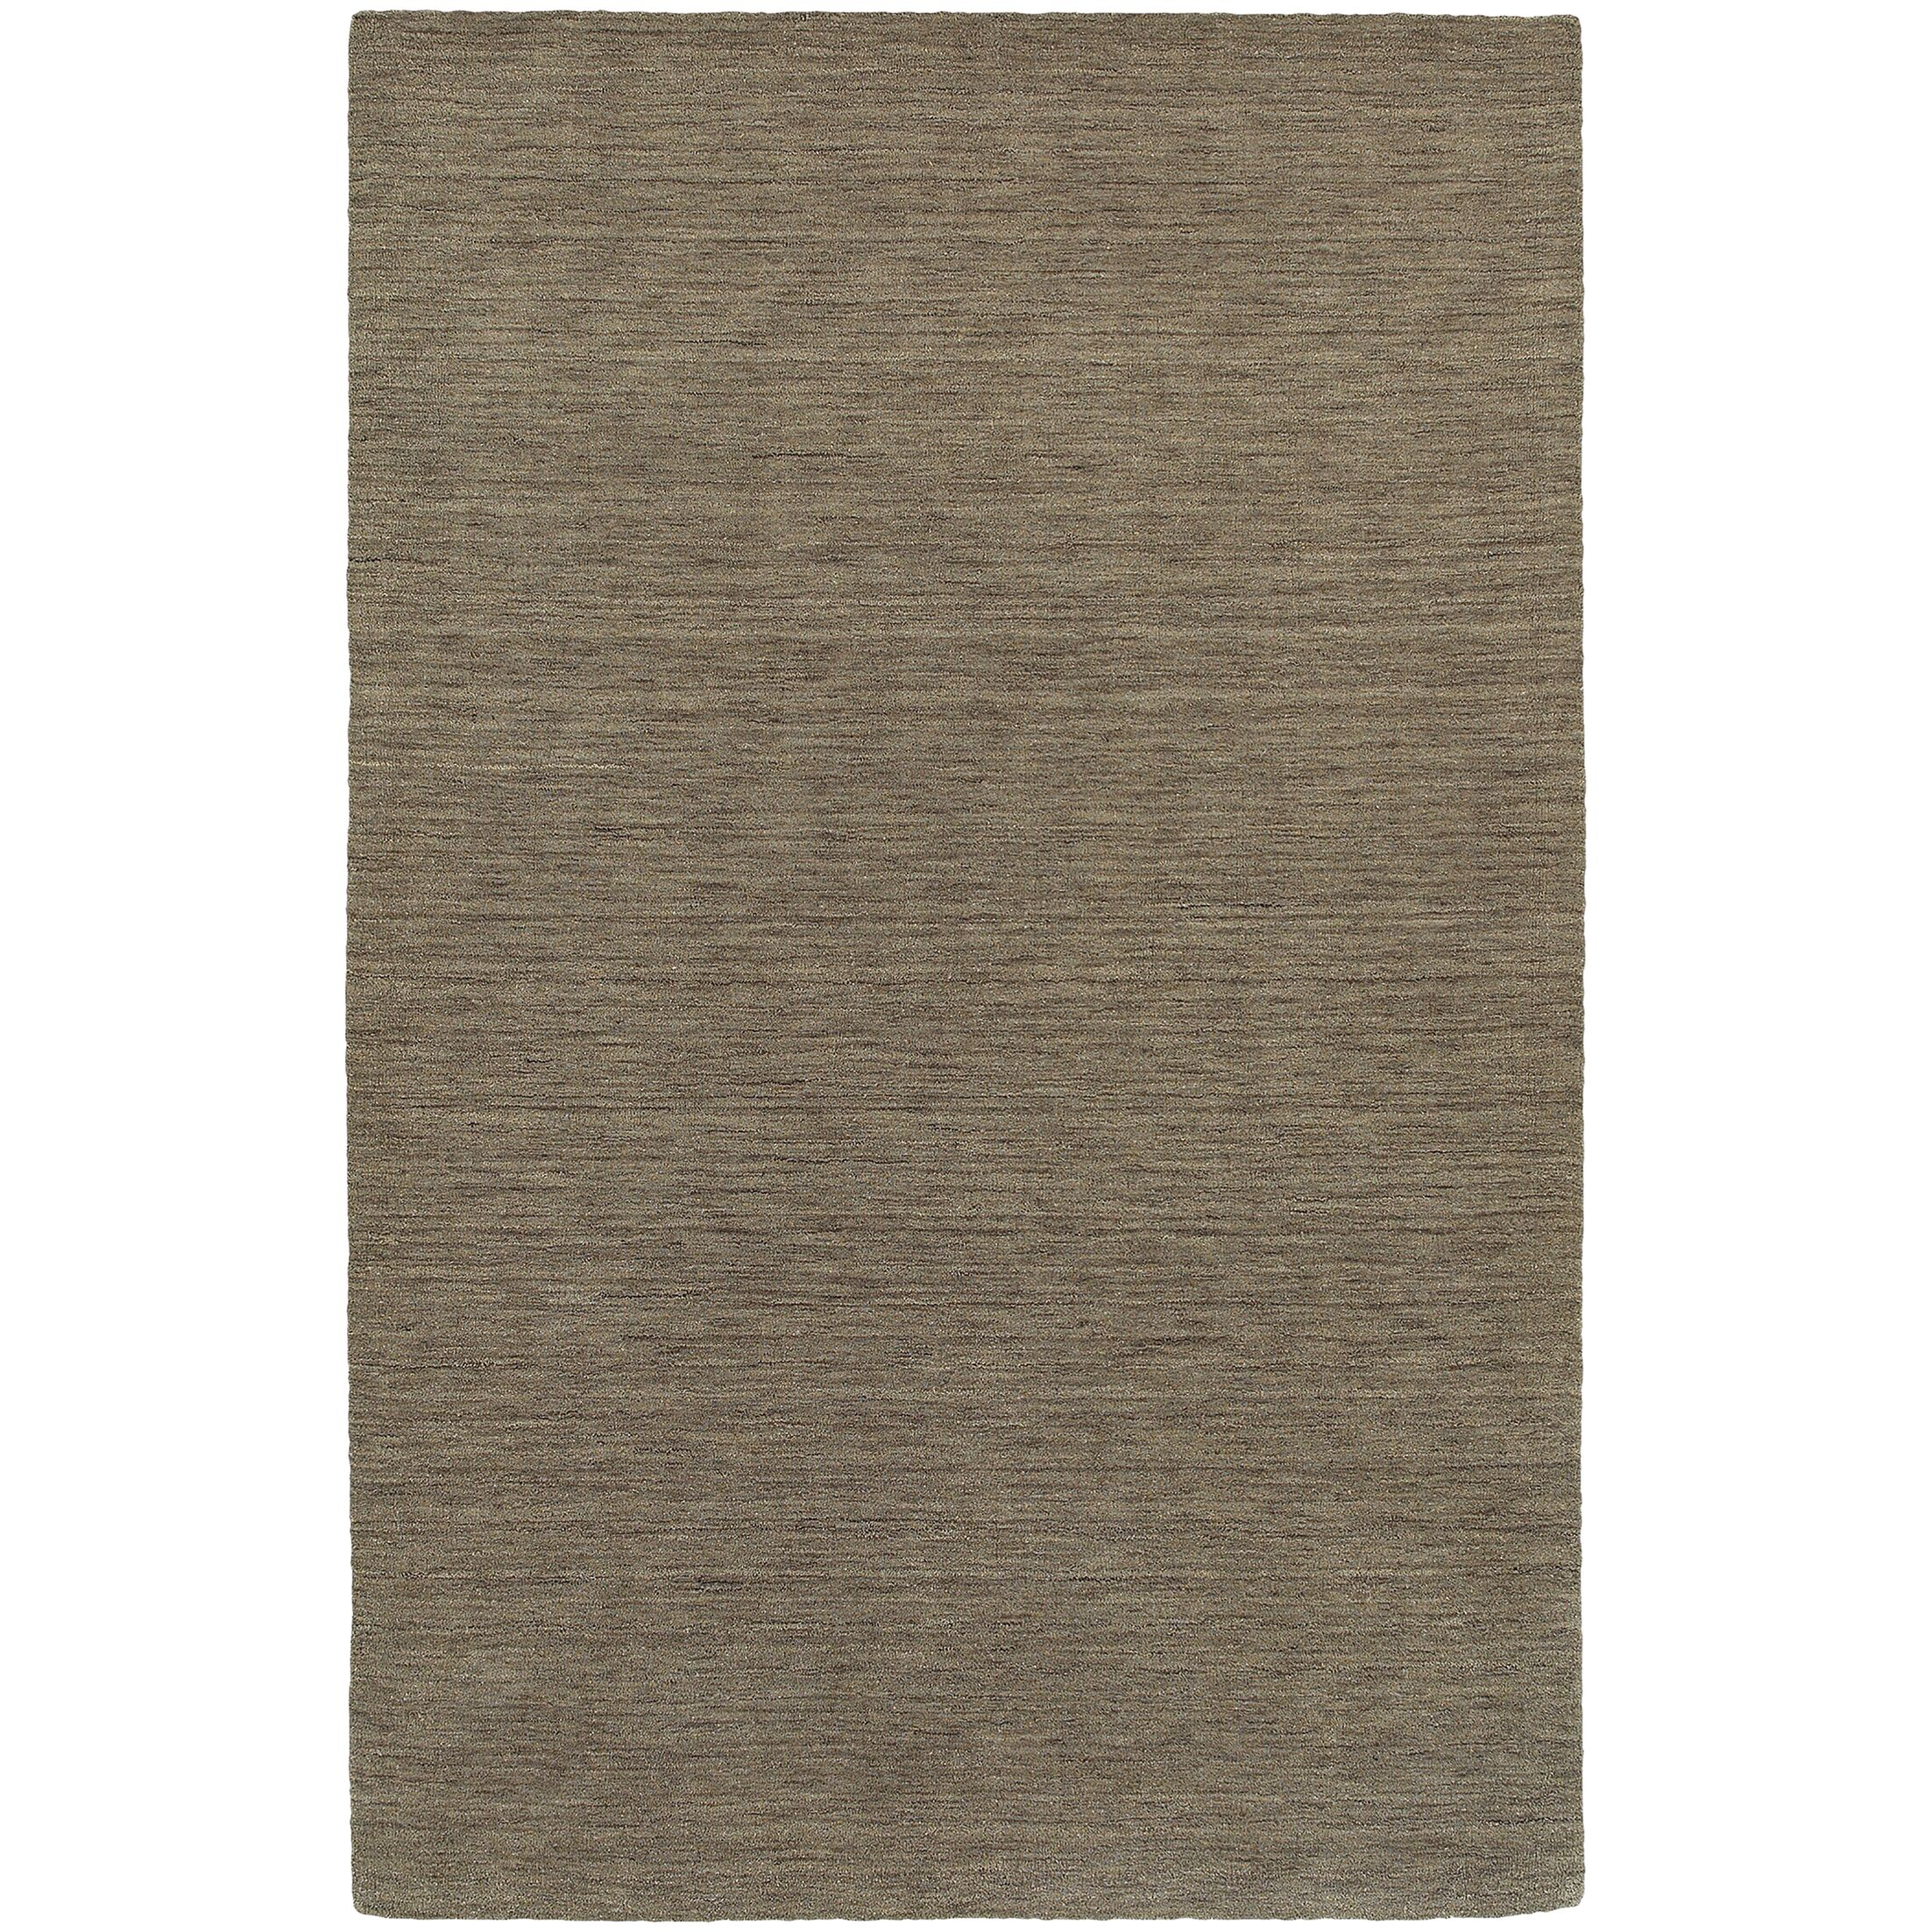 Barrientos Hand-Woven Heathered Green Area Rug Rug Size: Rectangle 8' x 10'